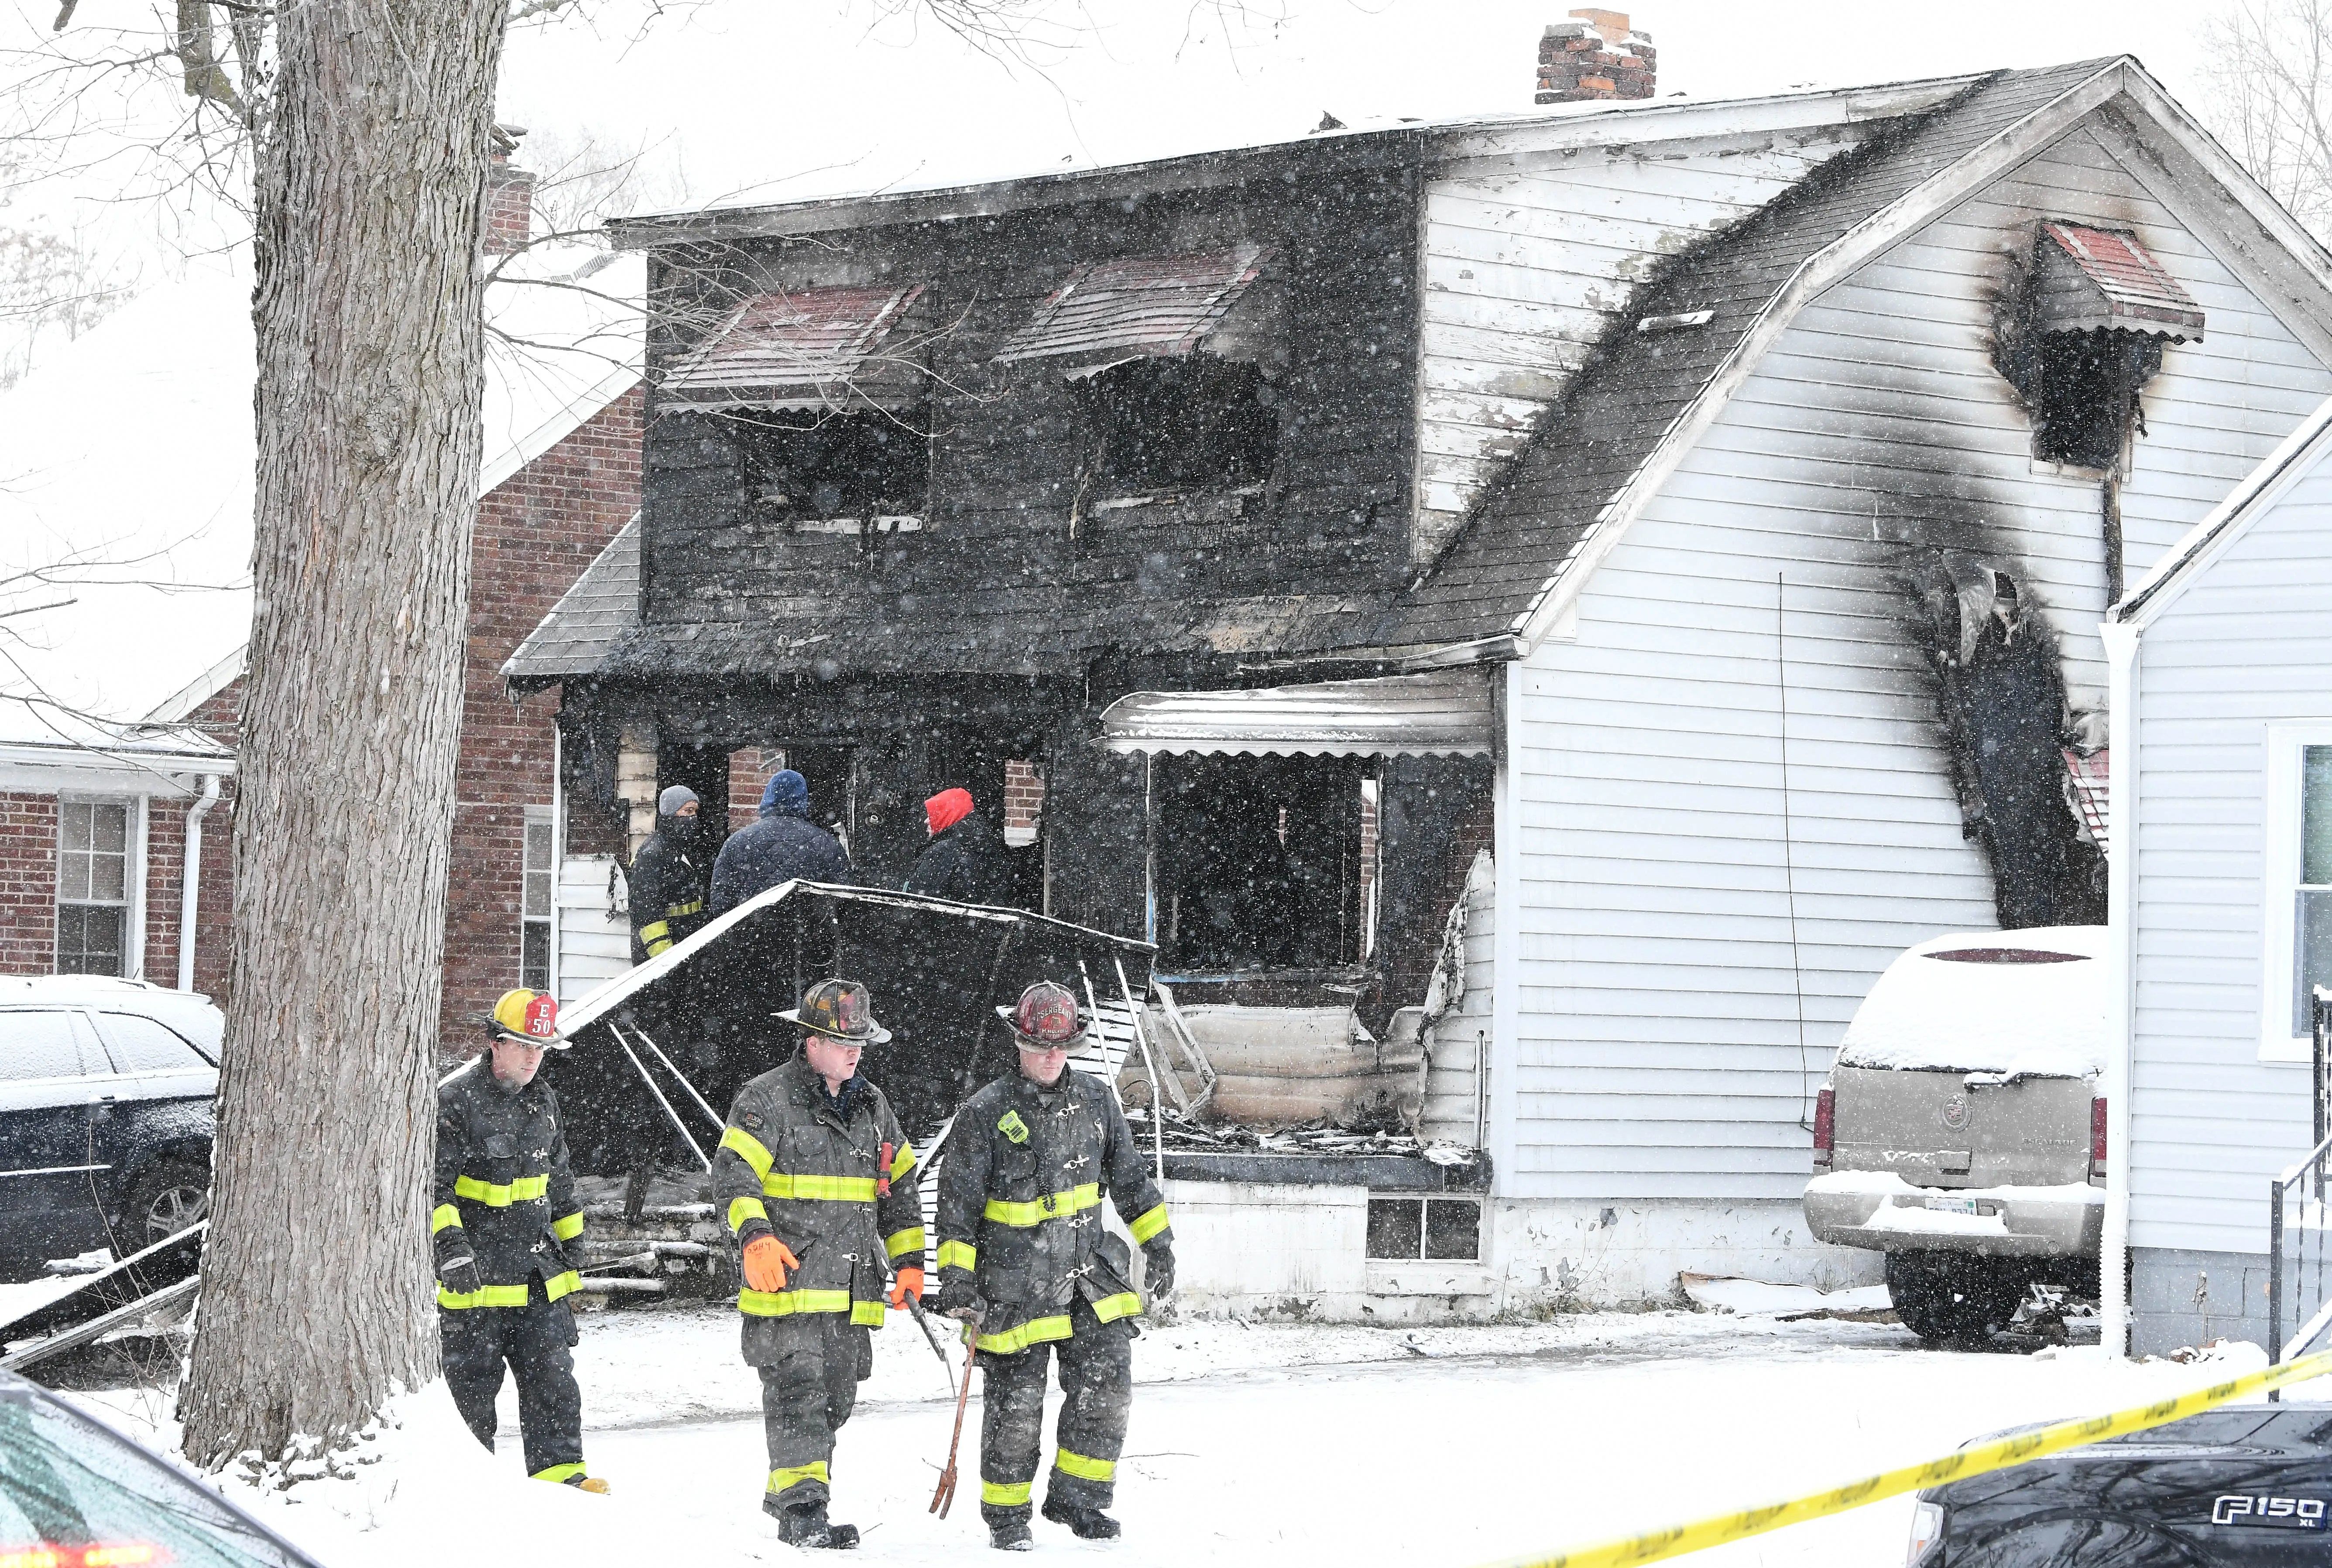 Firefighters at the scene of a fire in a house in the 20000 block of Helen Ave. in Detroit, Michigan  on Friday, December 25, 2020.